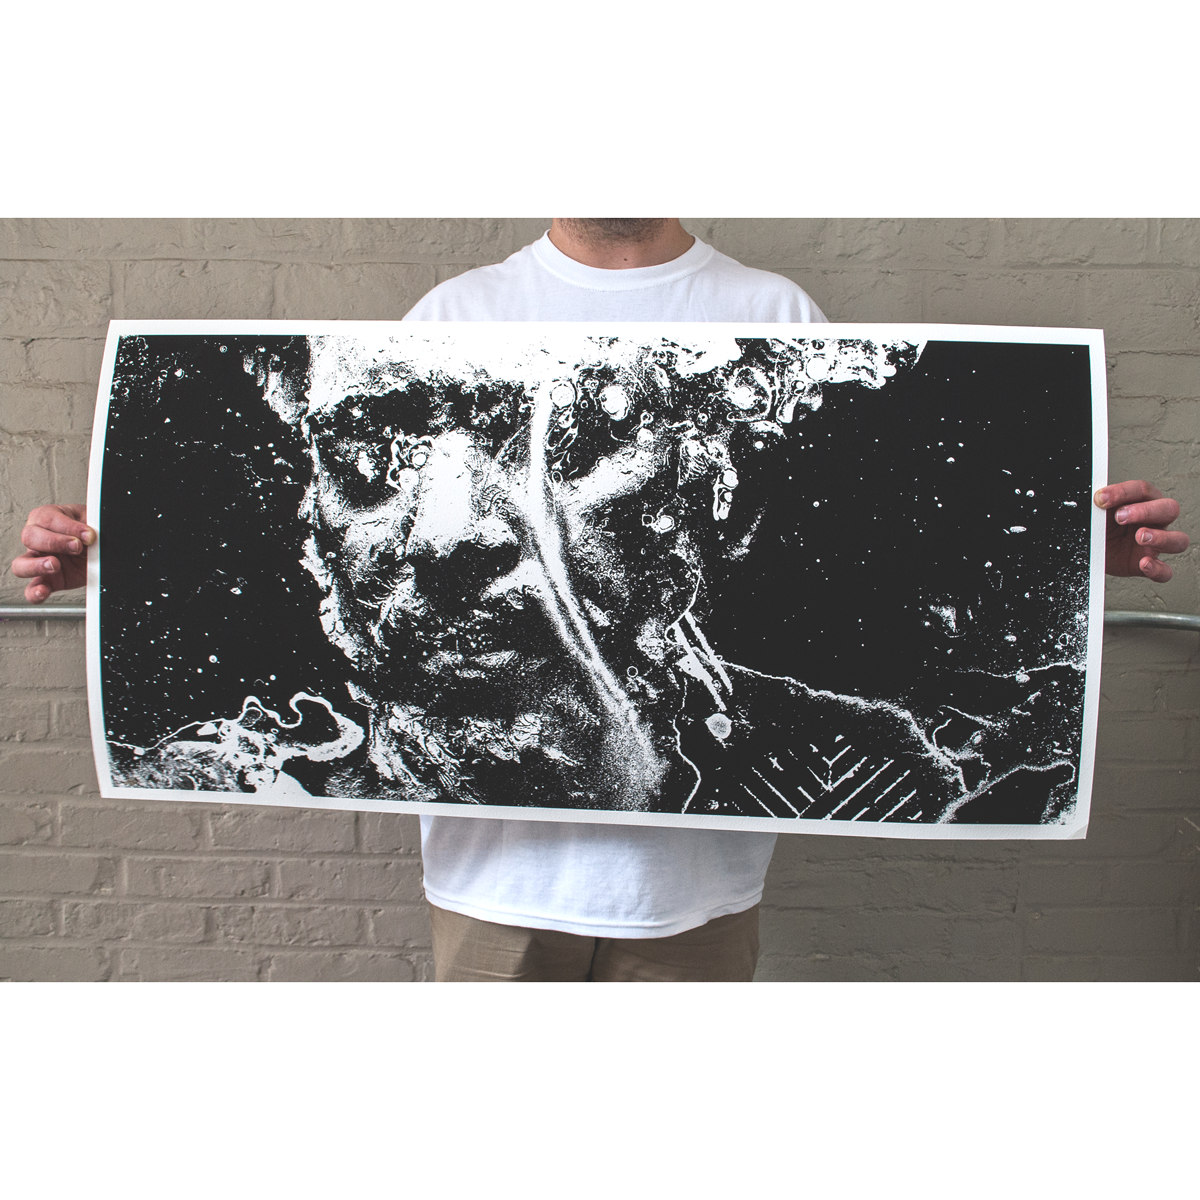 "J. Bannon ""01: A Single Tear"" Giclee Print"